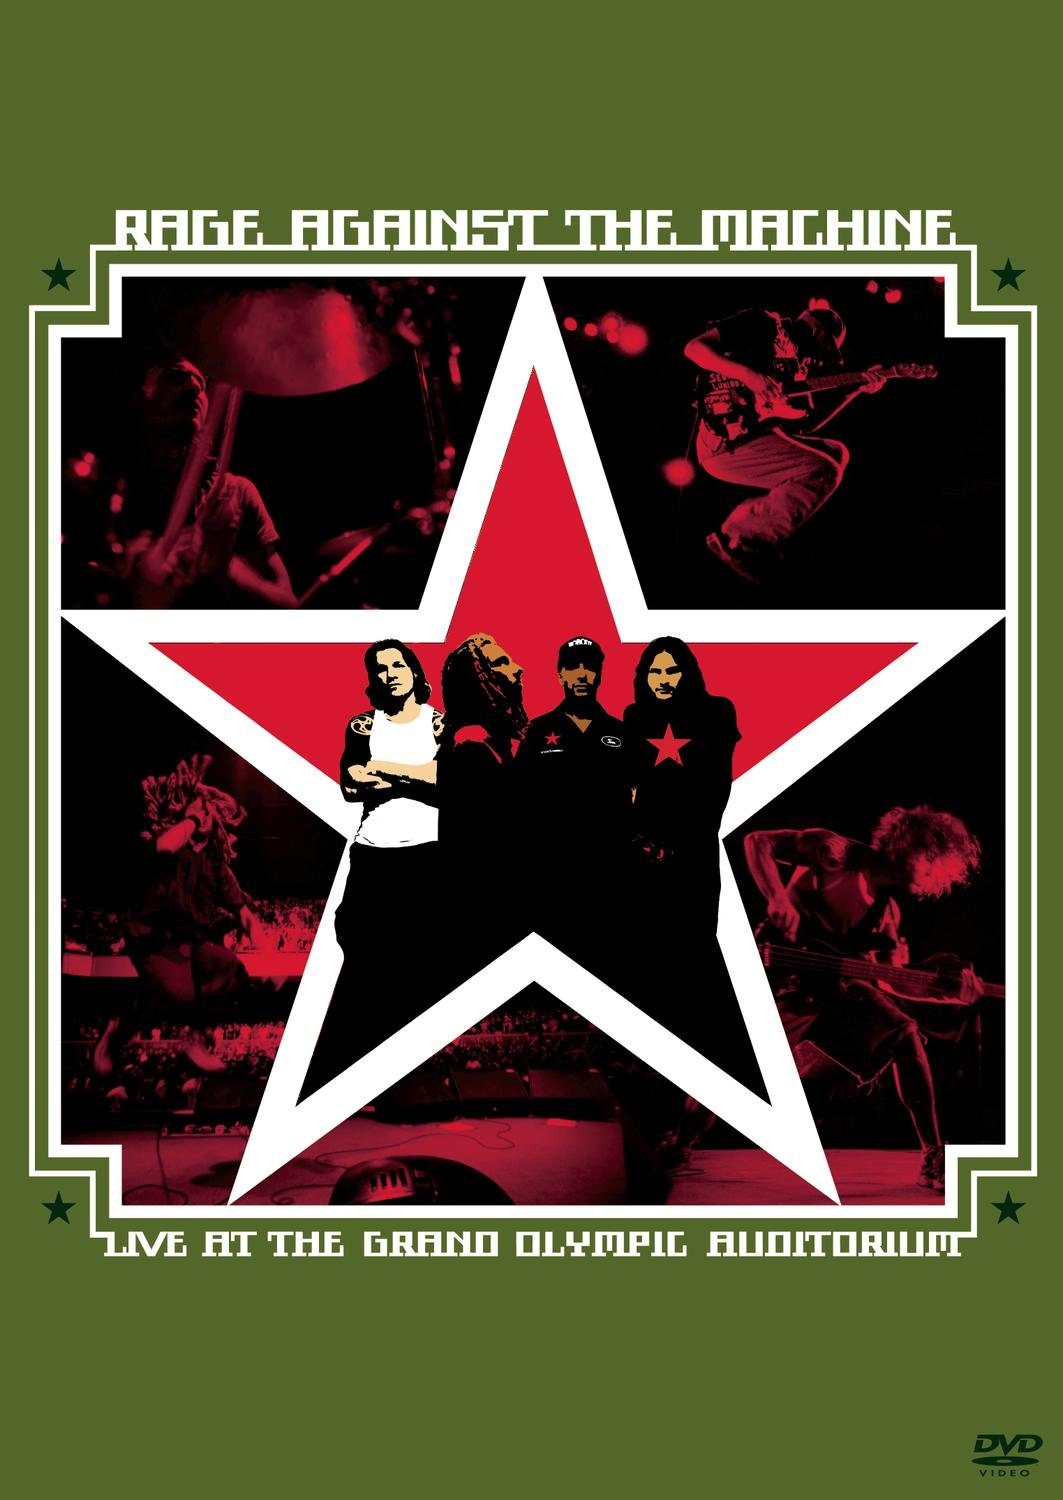 Rage Against The Machine - Live at the Grand Olympic Auditorium by Sony Music Video